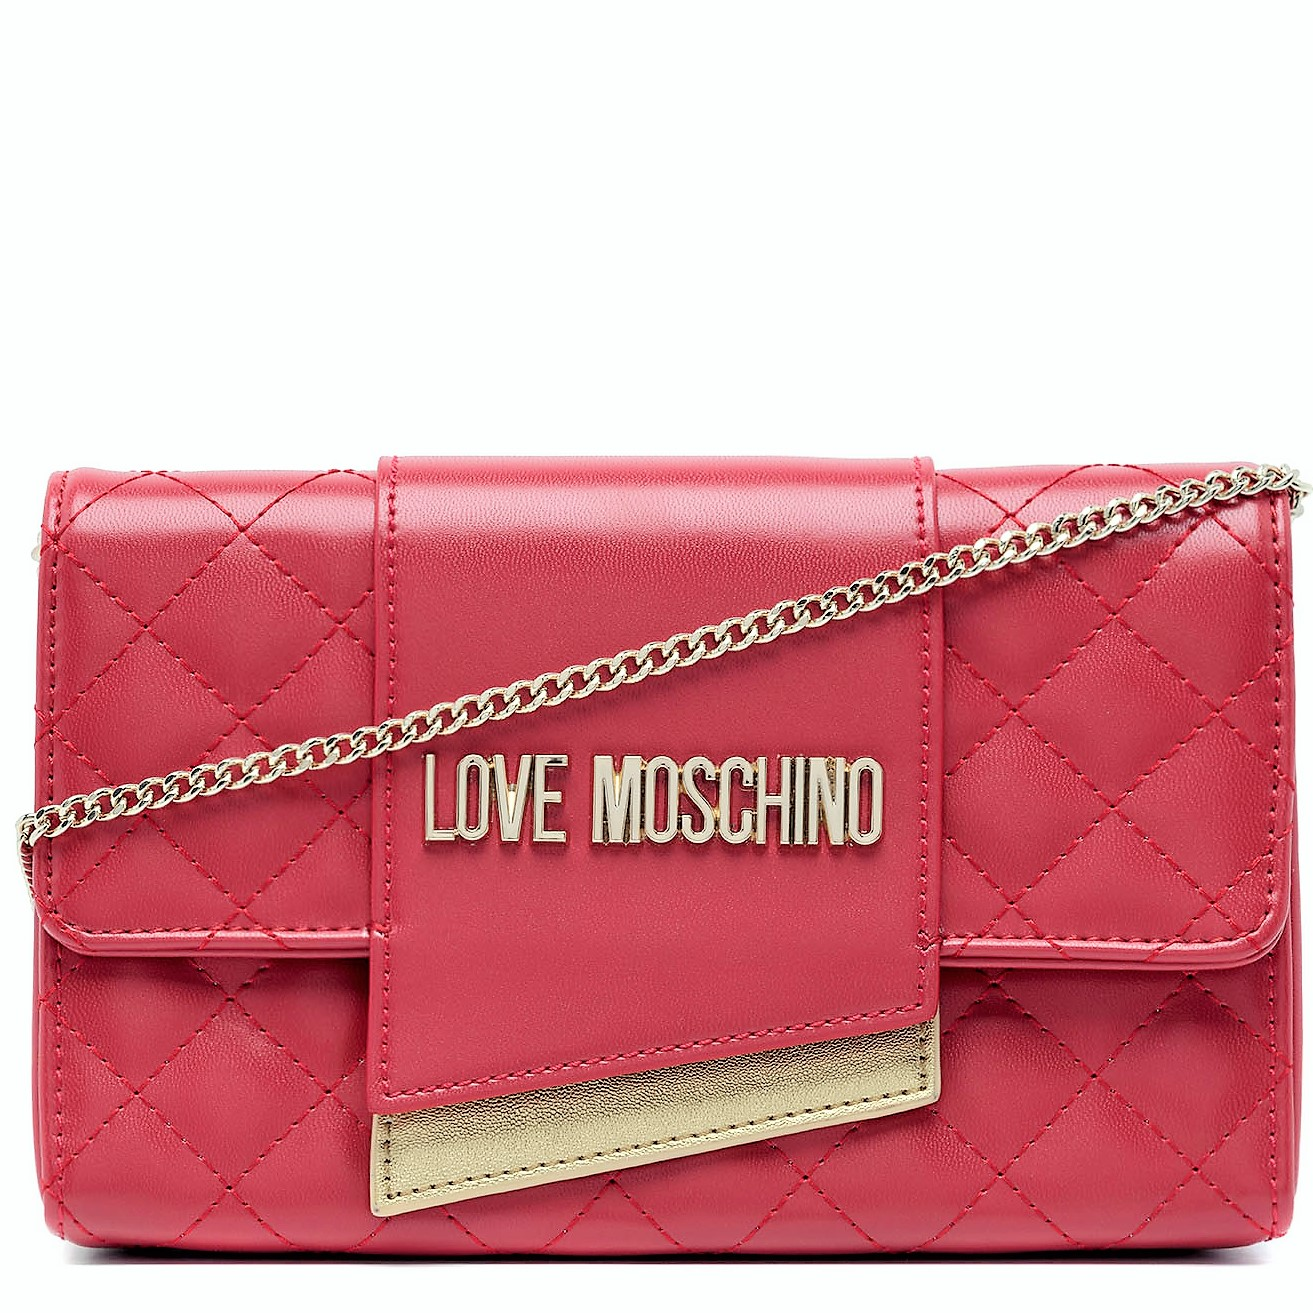 LOVE MOSCHINO BORSA DONNA QUILTED NAPPA PU ROSSO JC4295PP07KA0000 TRACOLLINA